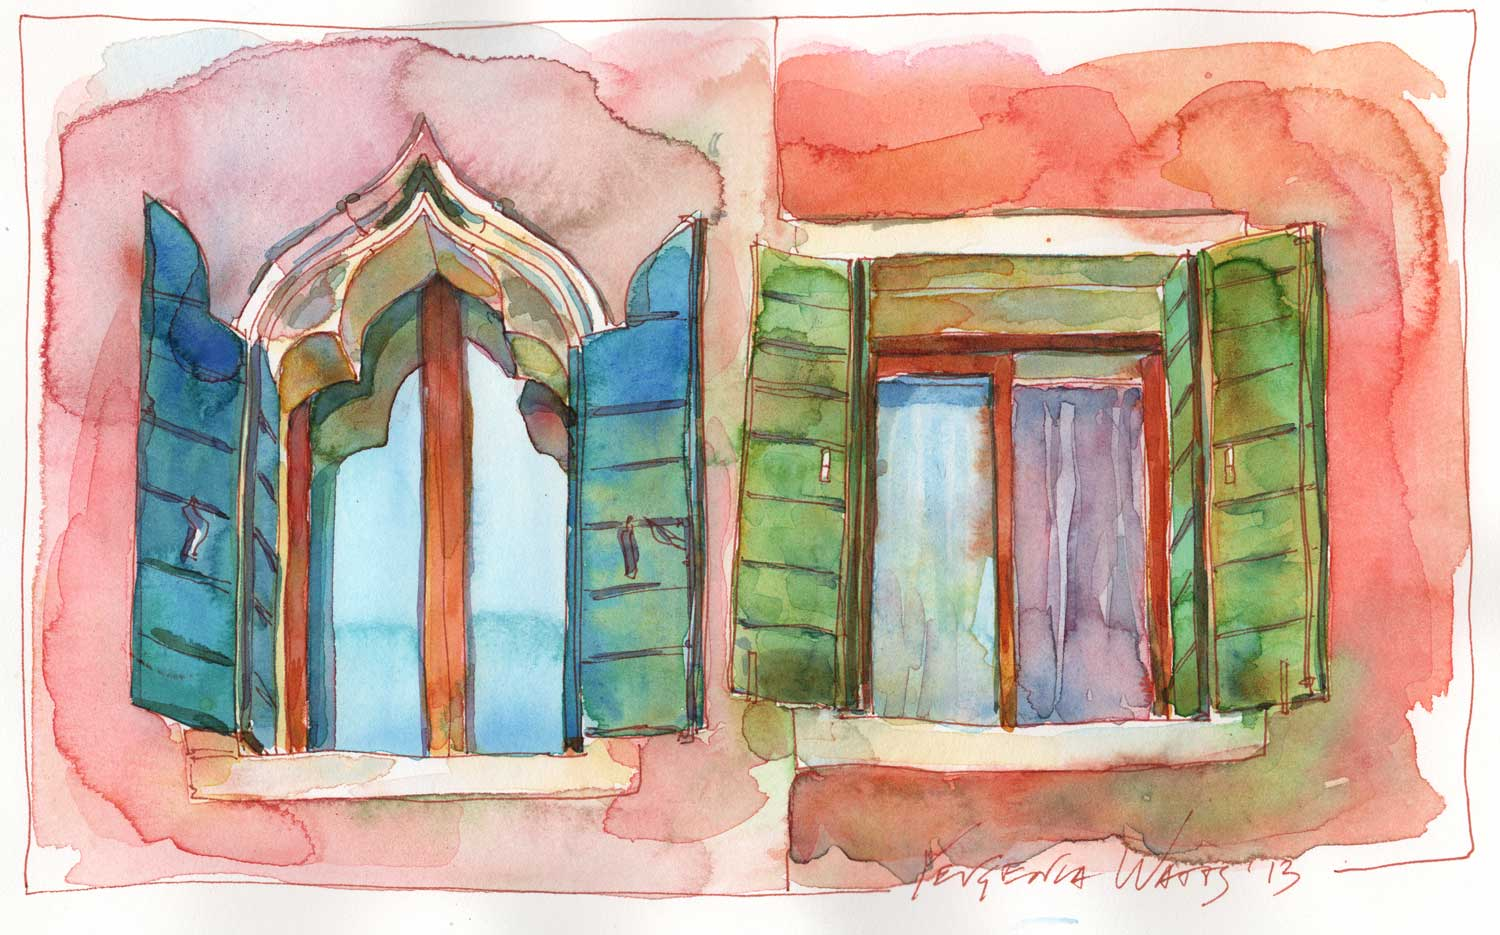 """6.5 x 10"""" ink and watercolor on hot press paper. Special price of $75 until Februrary 1."""